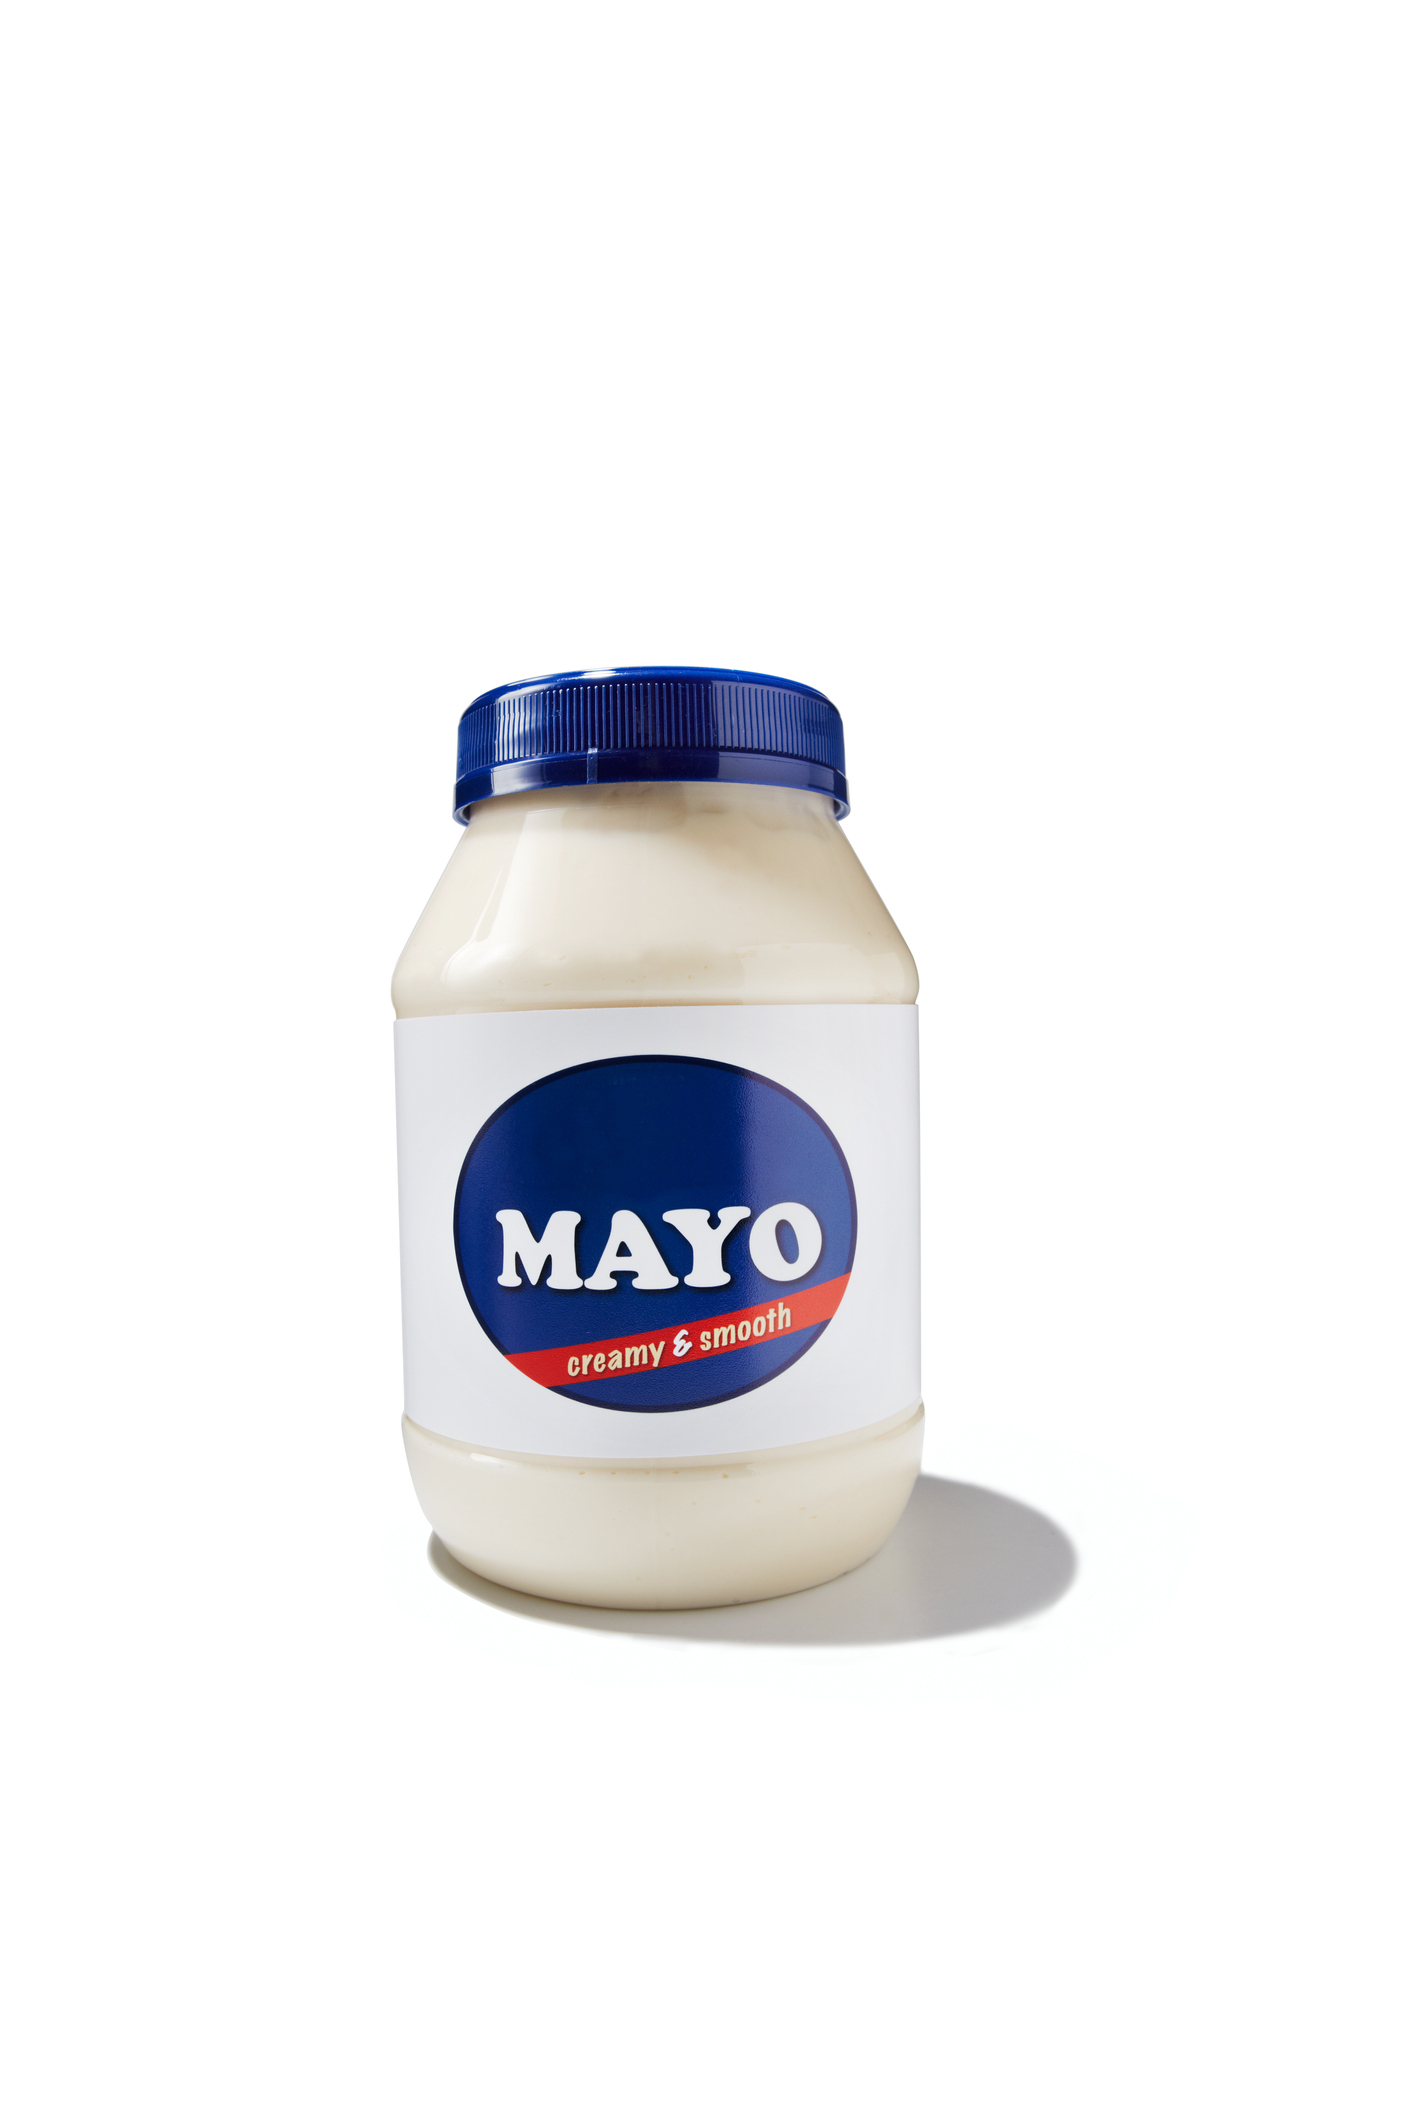 Jar of Mayo